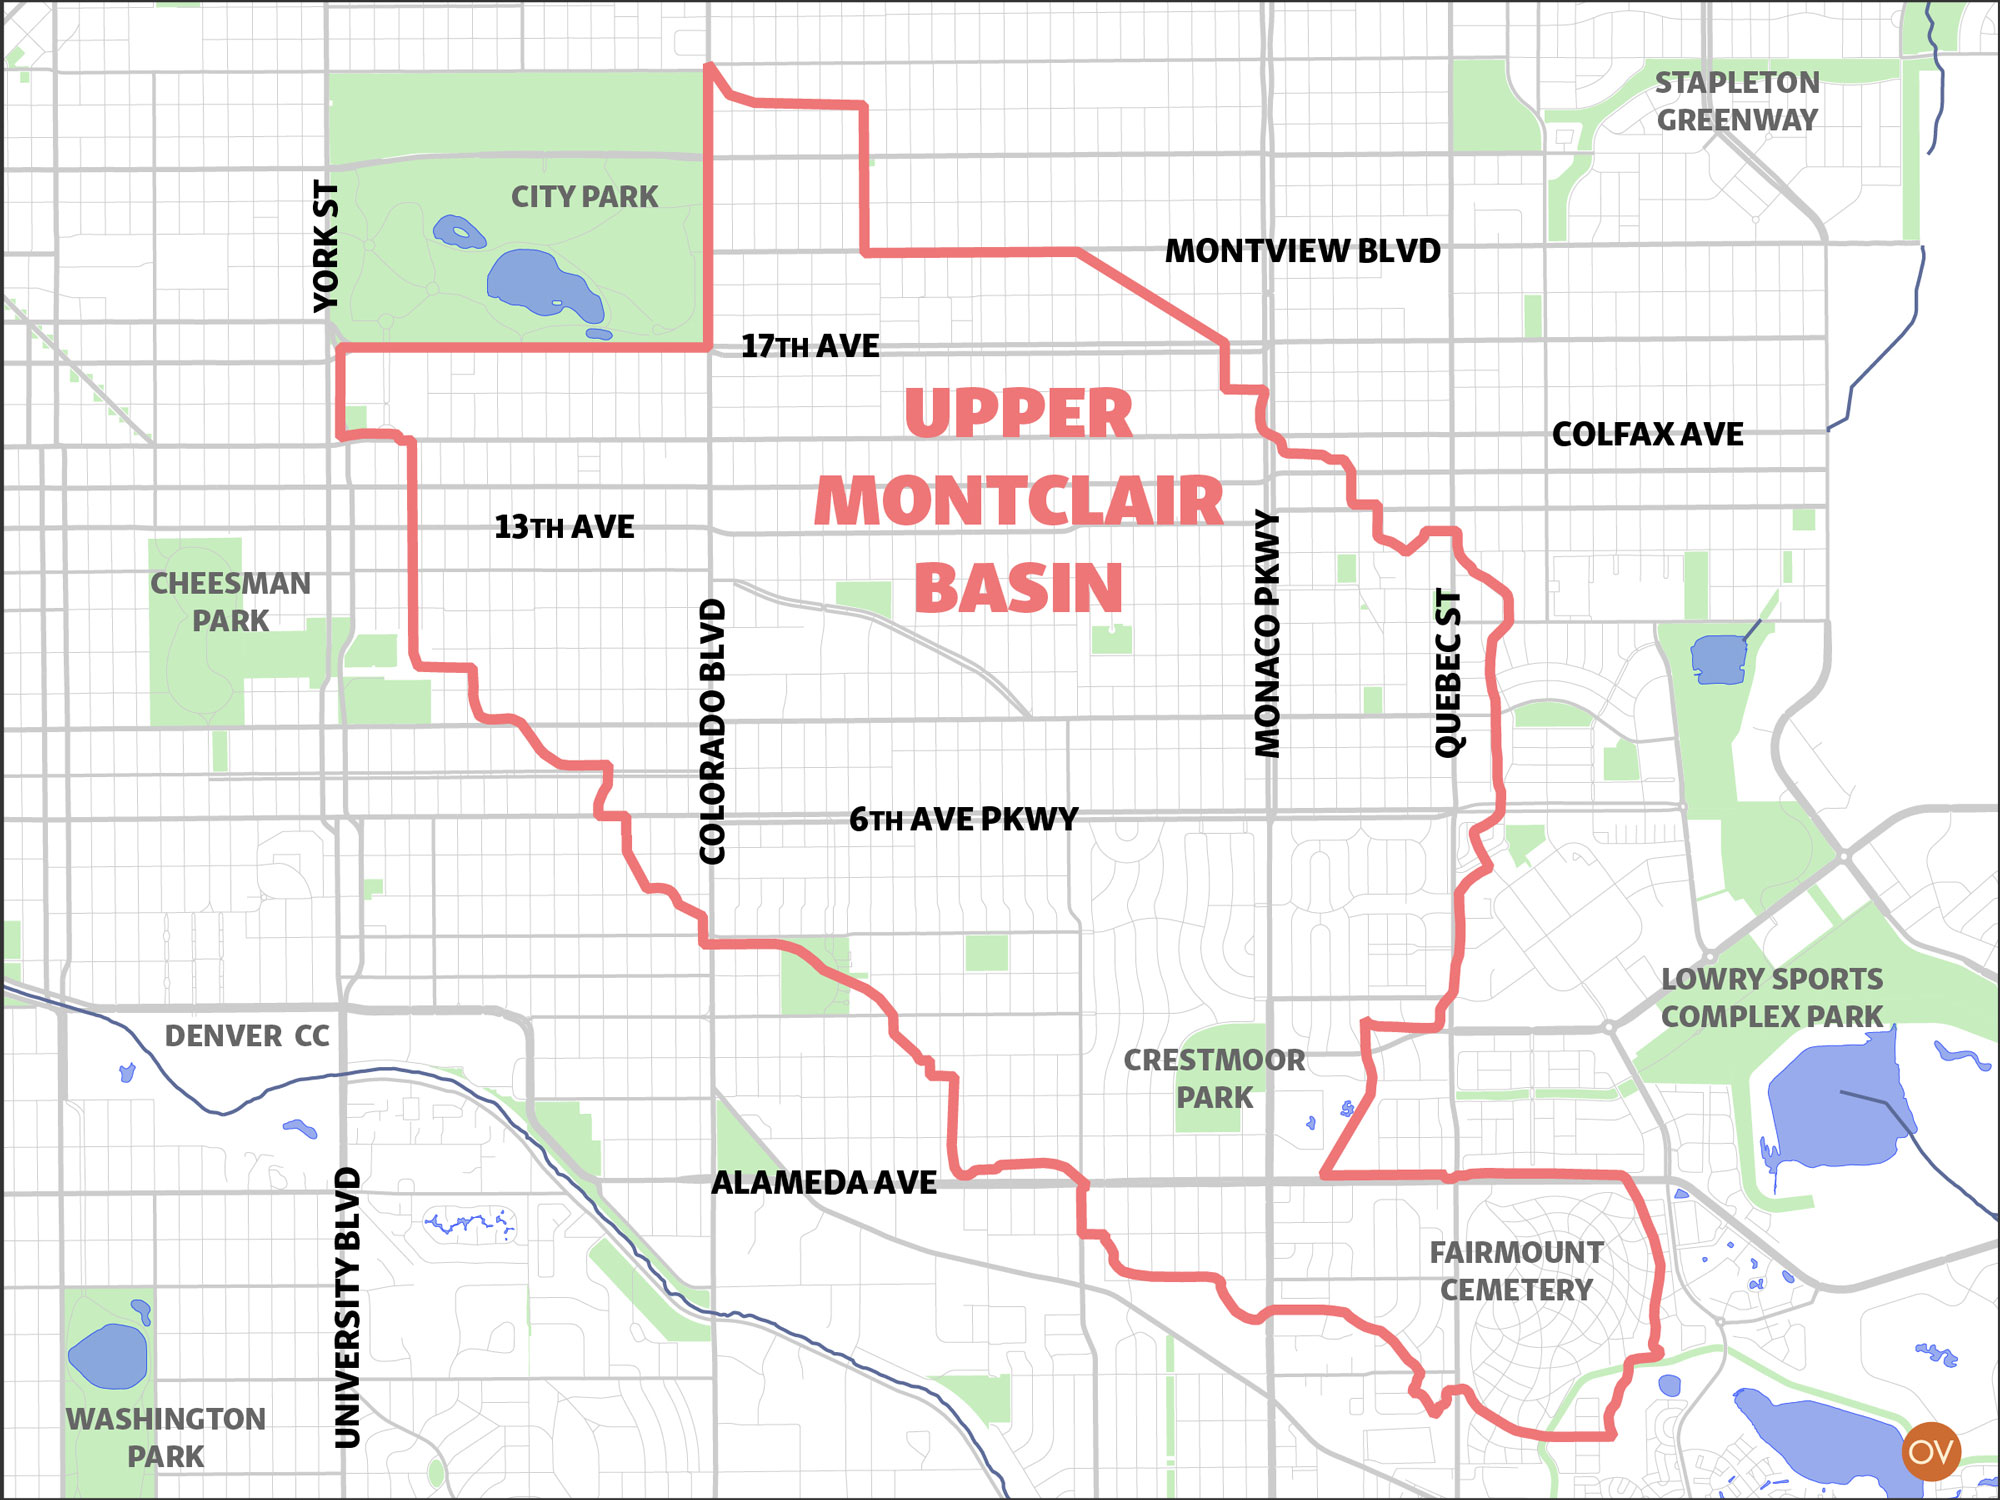 Map of Upper Montclair Basin and study area, from City Park in north to Fairmont Cemetery in south